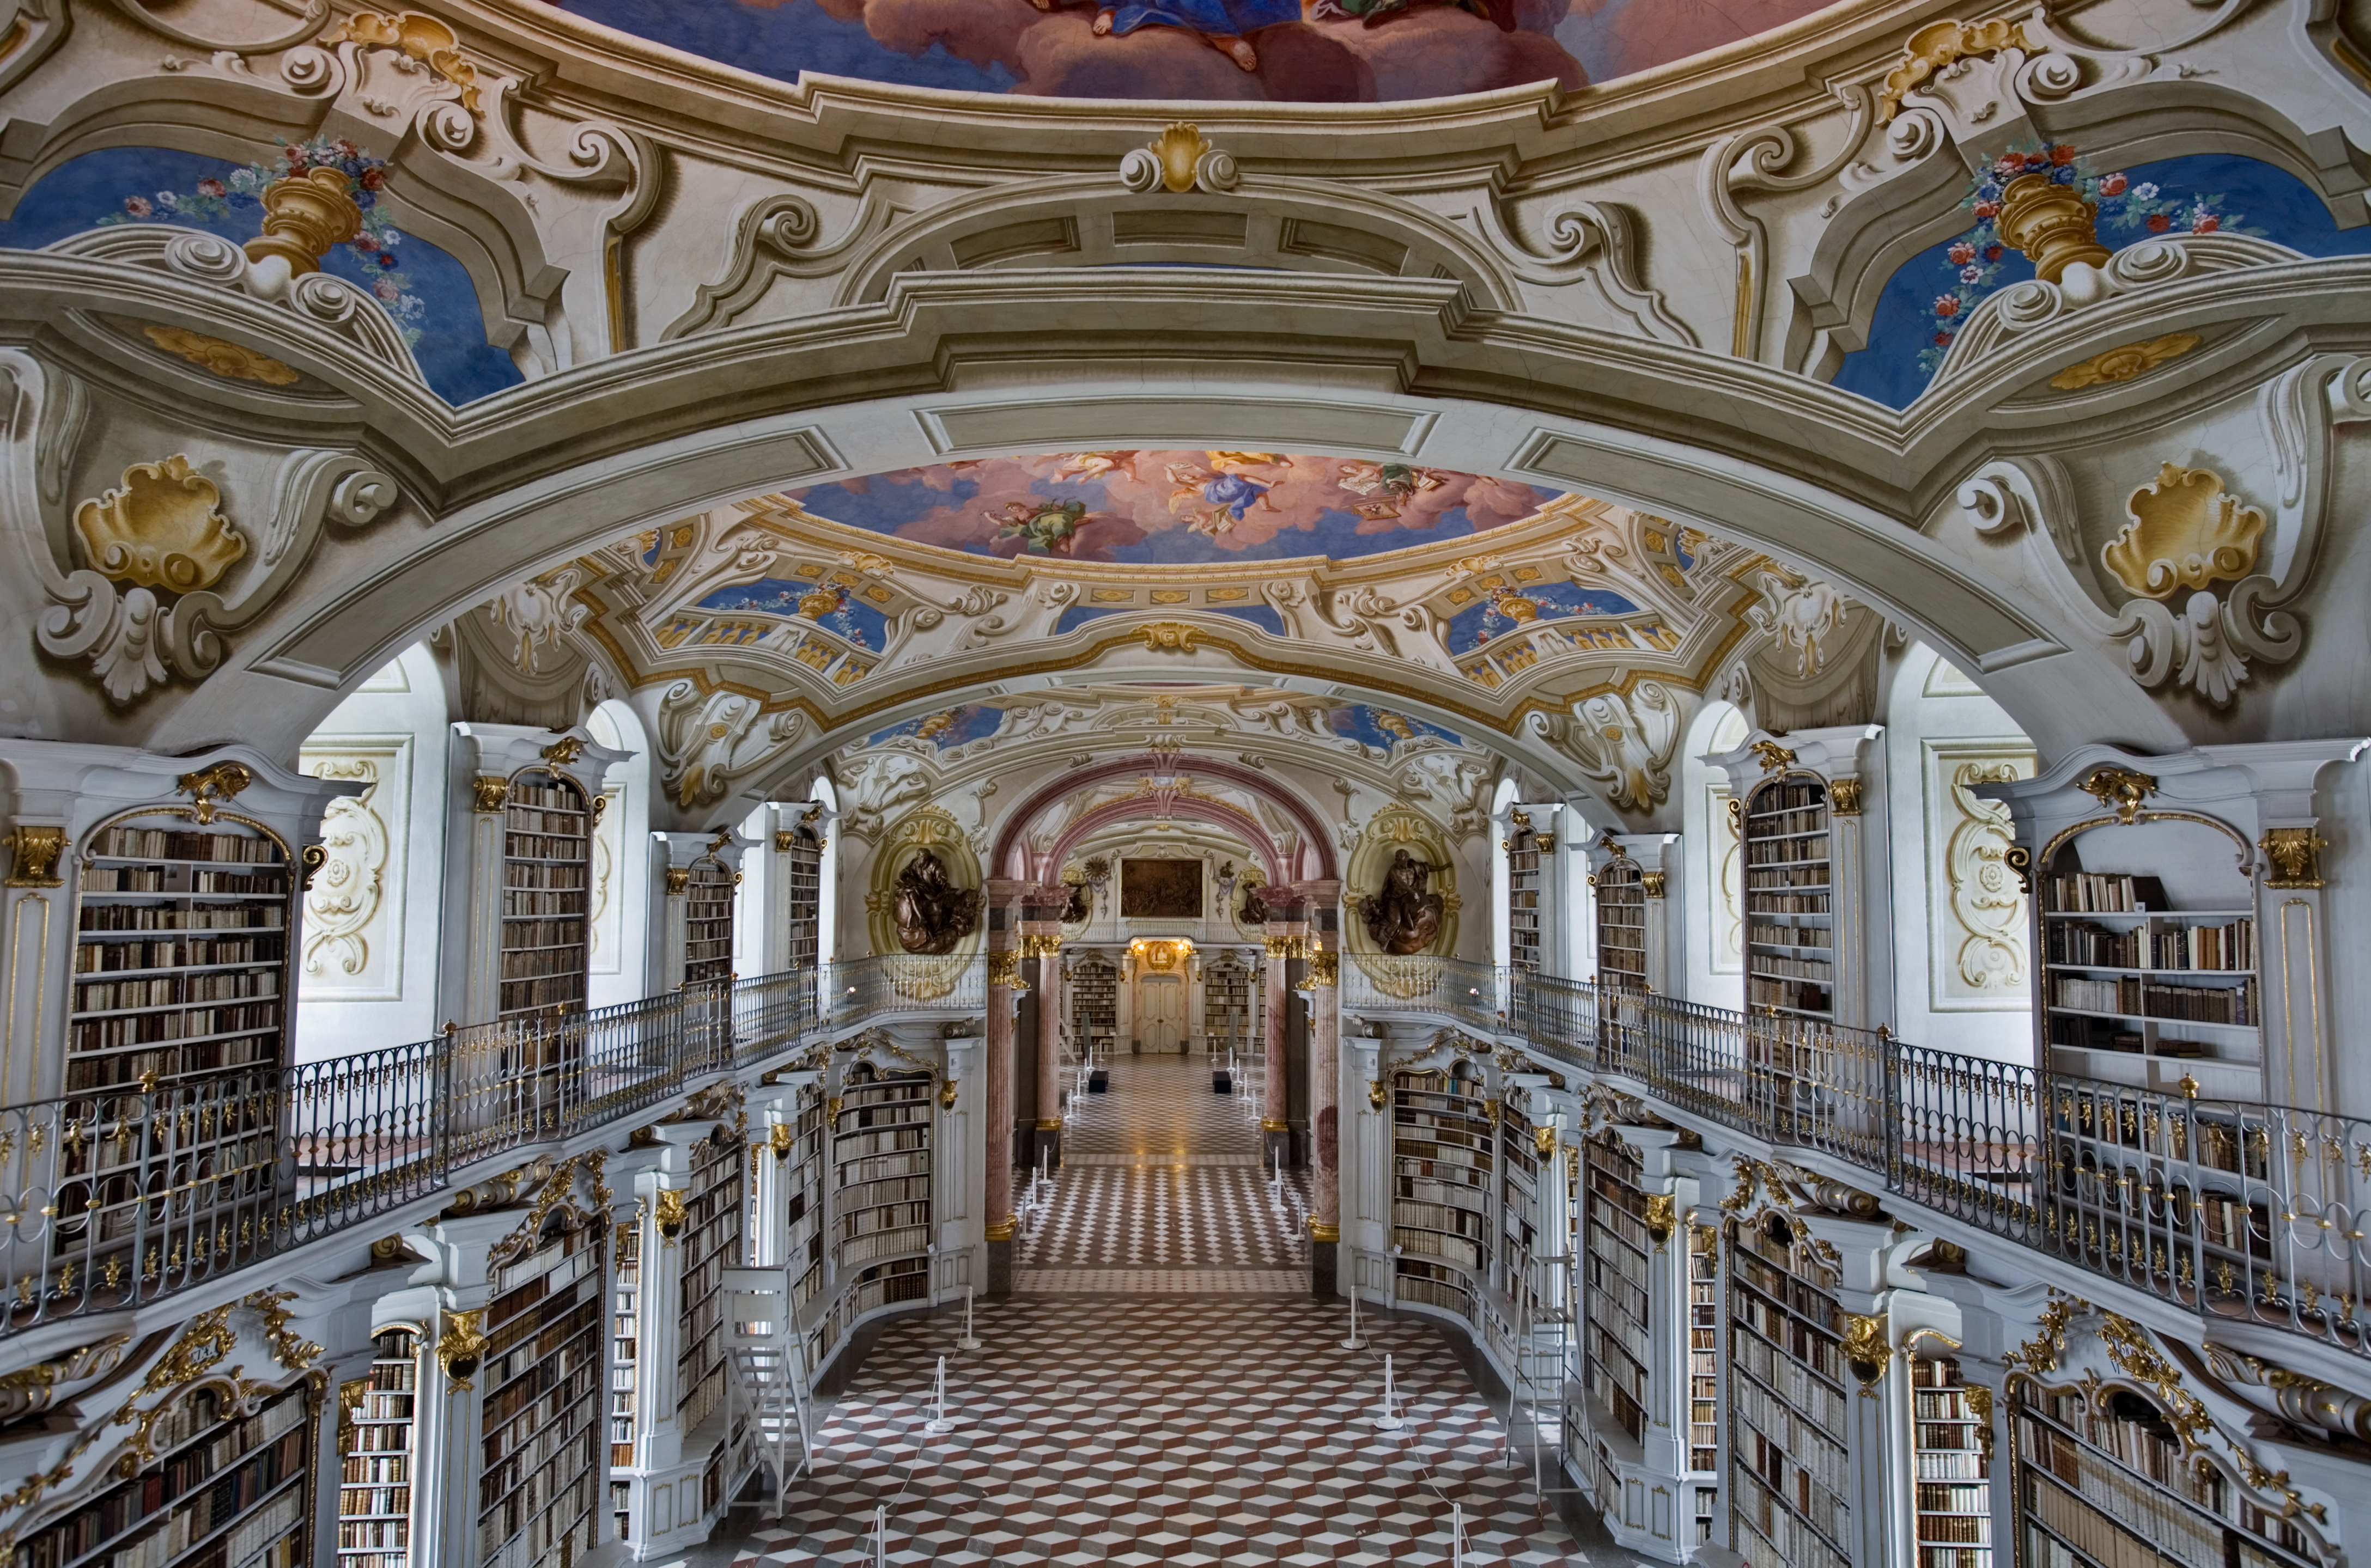 Admont Austria  city images : Admont Abbey Library, Austria